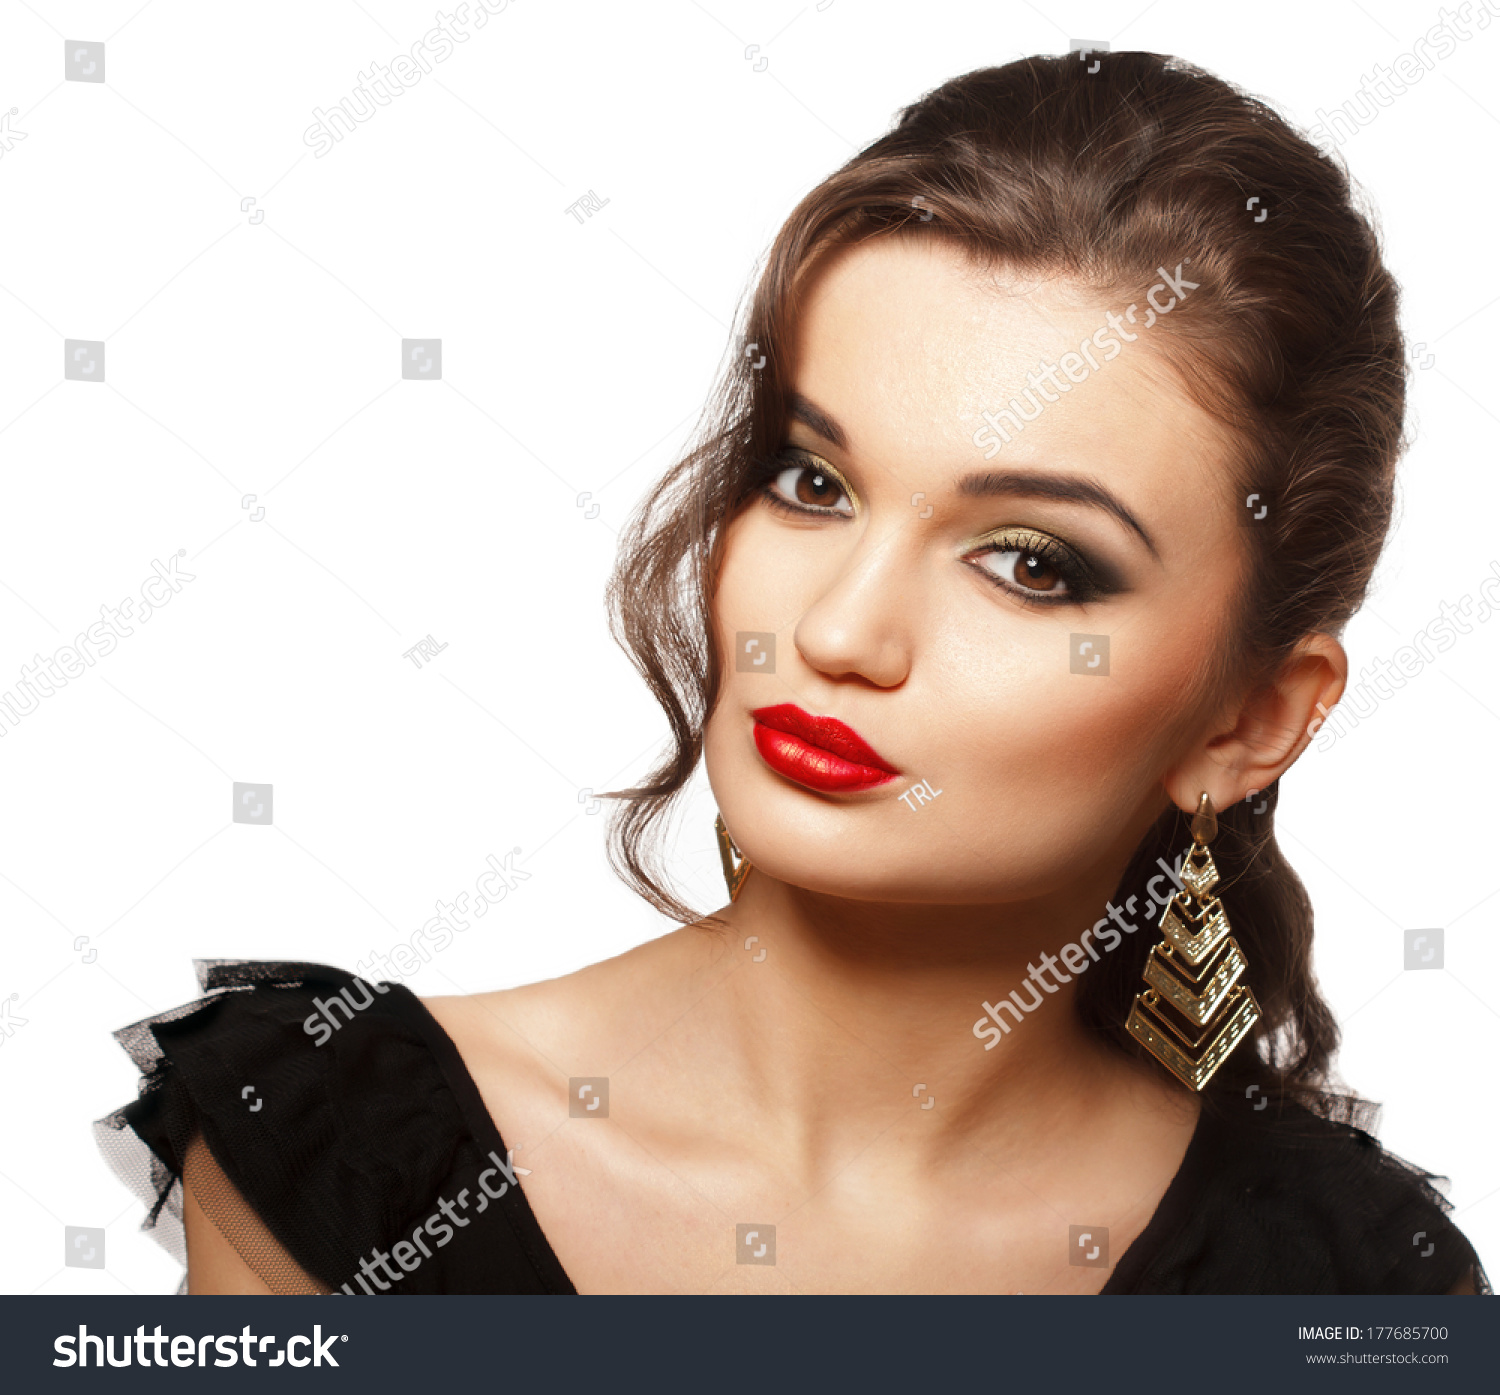 Black dress with red lipstick - Fashion Girl Portrait In Black Dress Evening Bright Makeup And Hairstyle Smokey Eyes